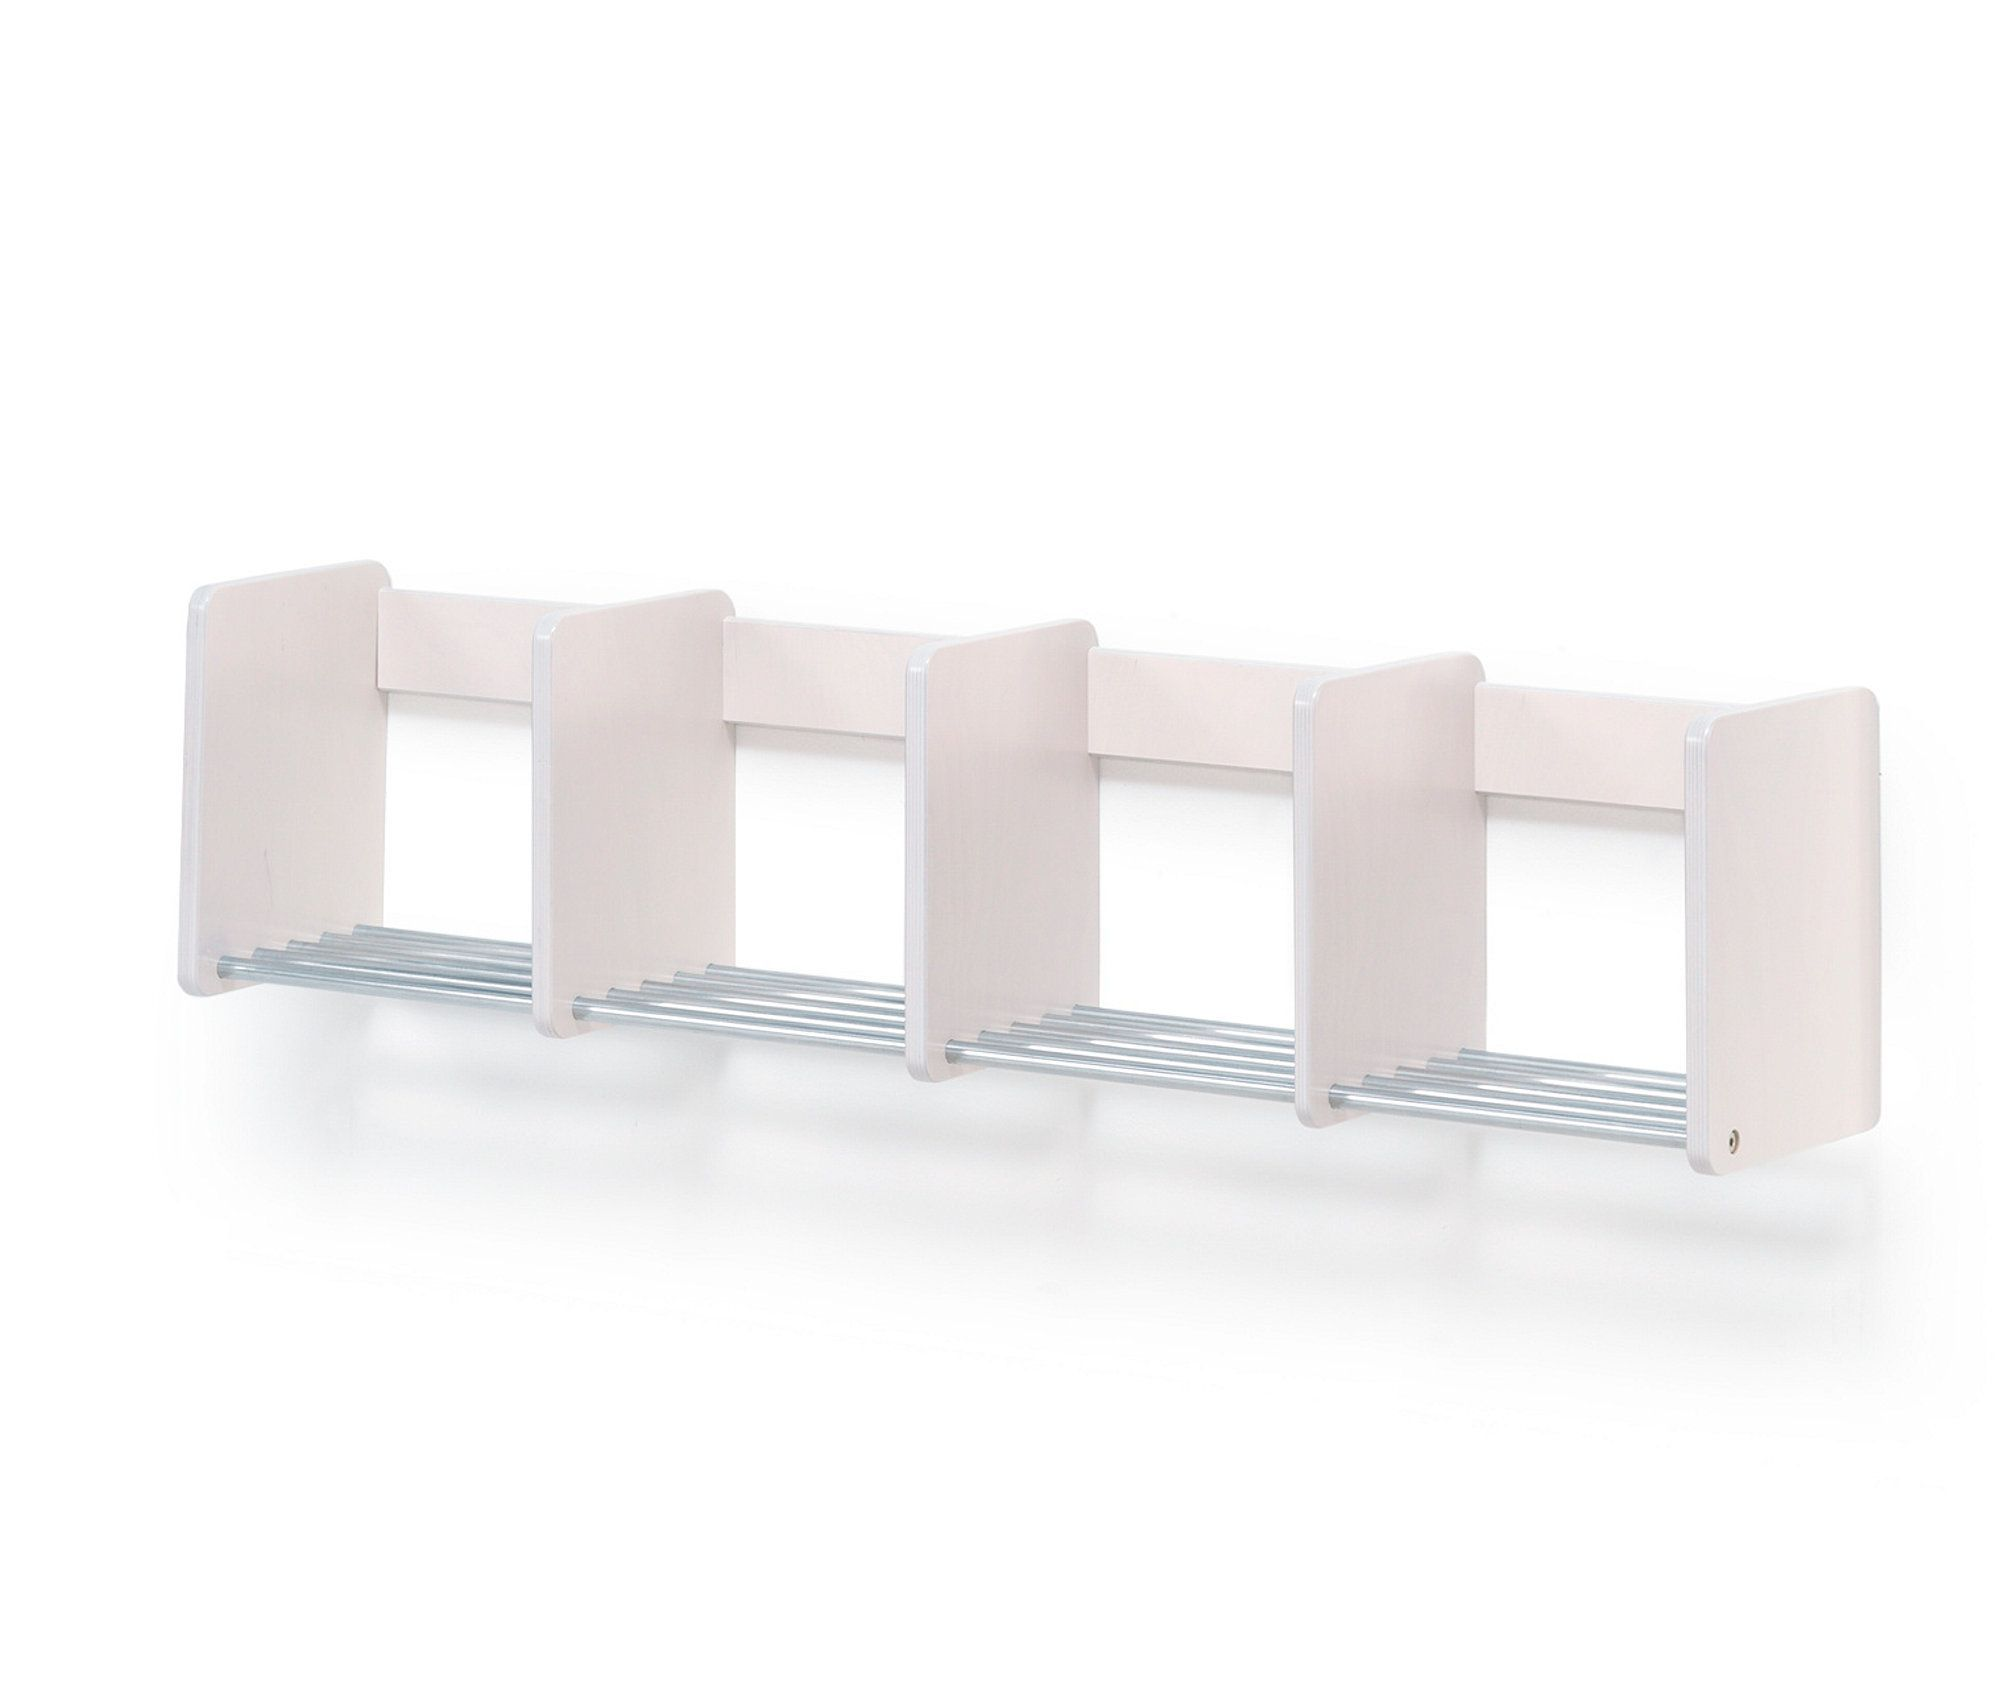 Wall Mounted Shoe Rack Tobbe 4 Sections White Aj Products Online Mounted Online Products Ra In 2020 Wall Mounted Shoe Rack Wall Mounted Shelves Pot Rack Hanging